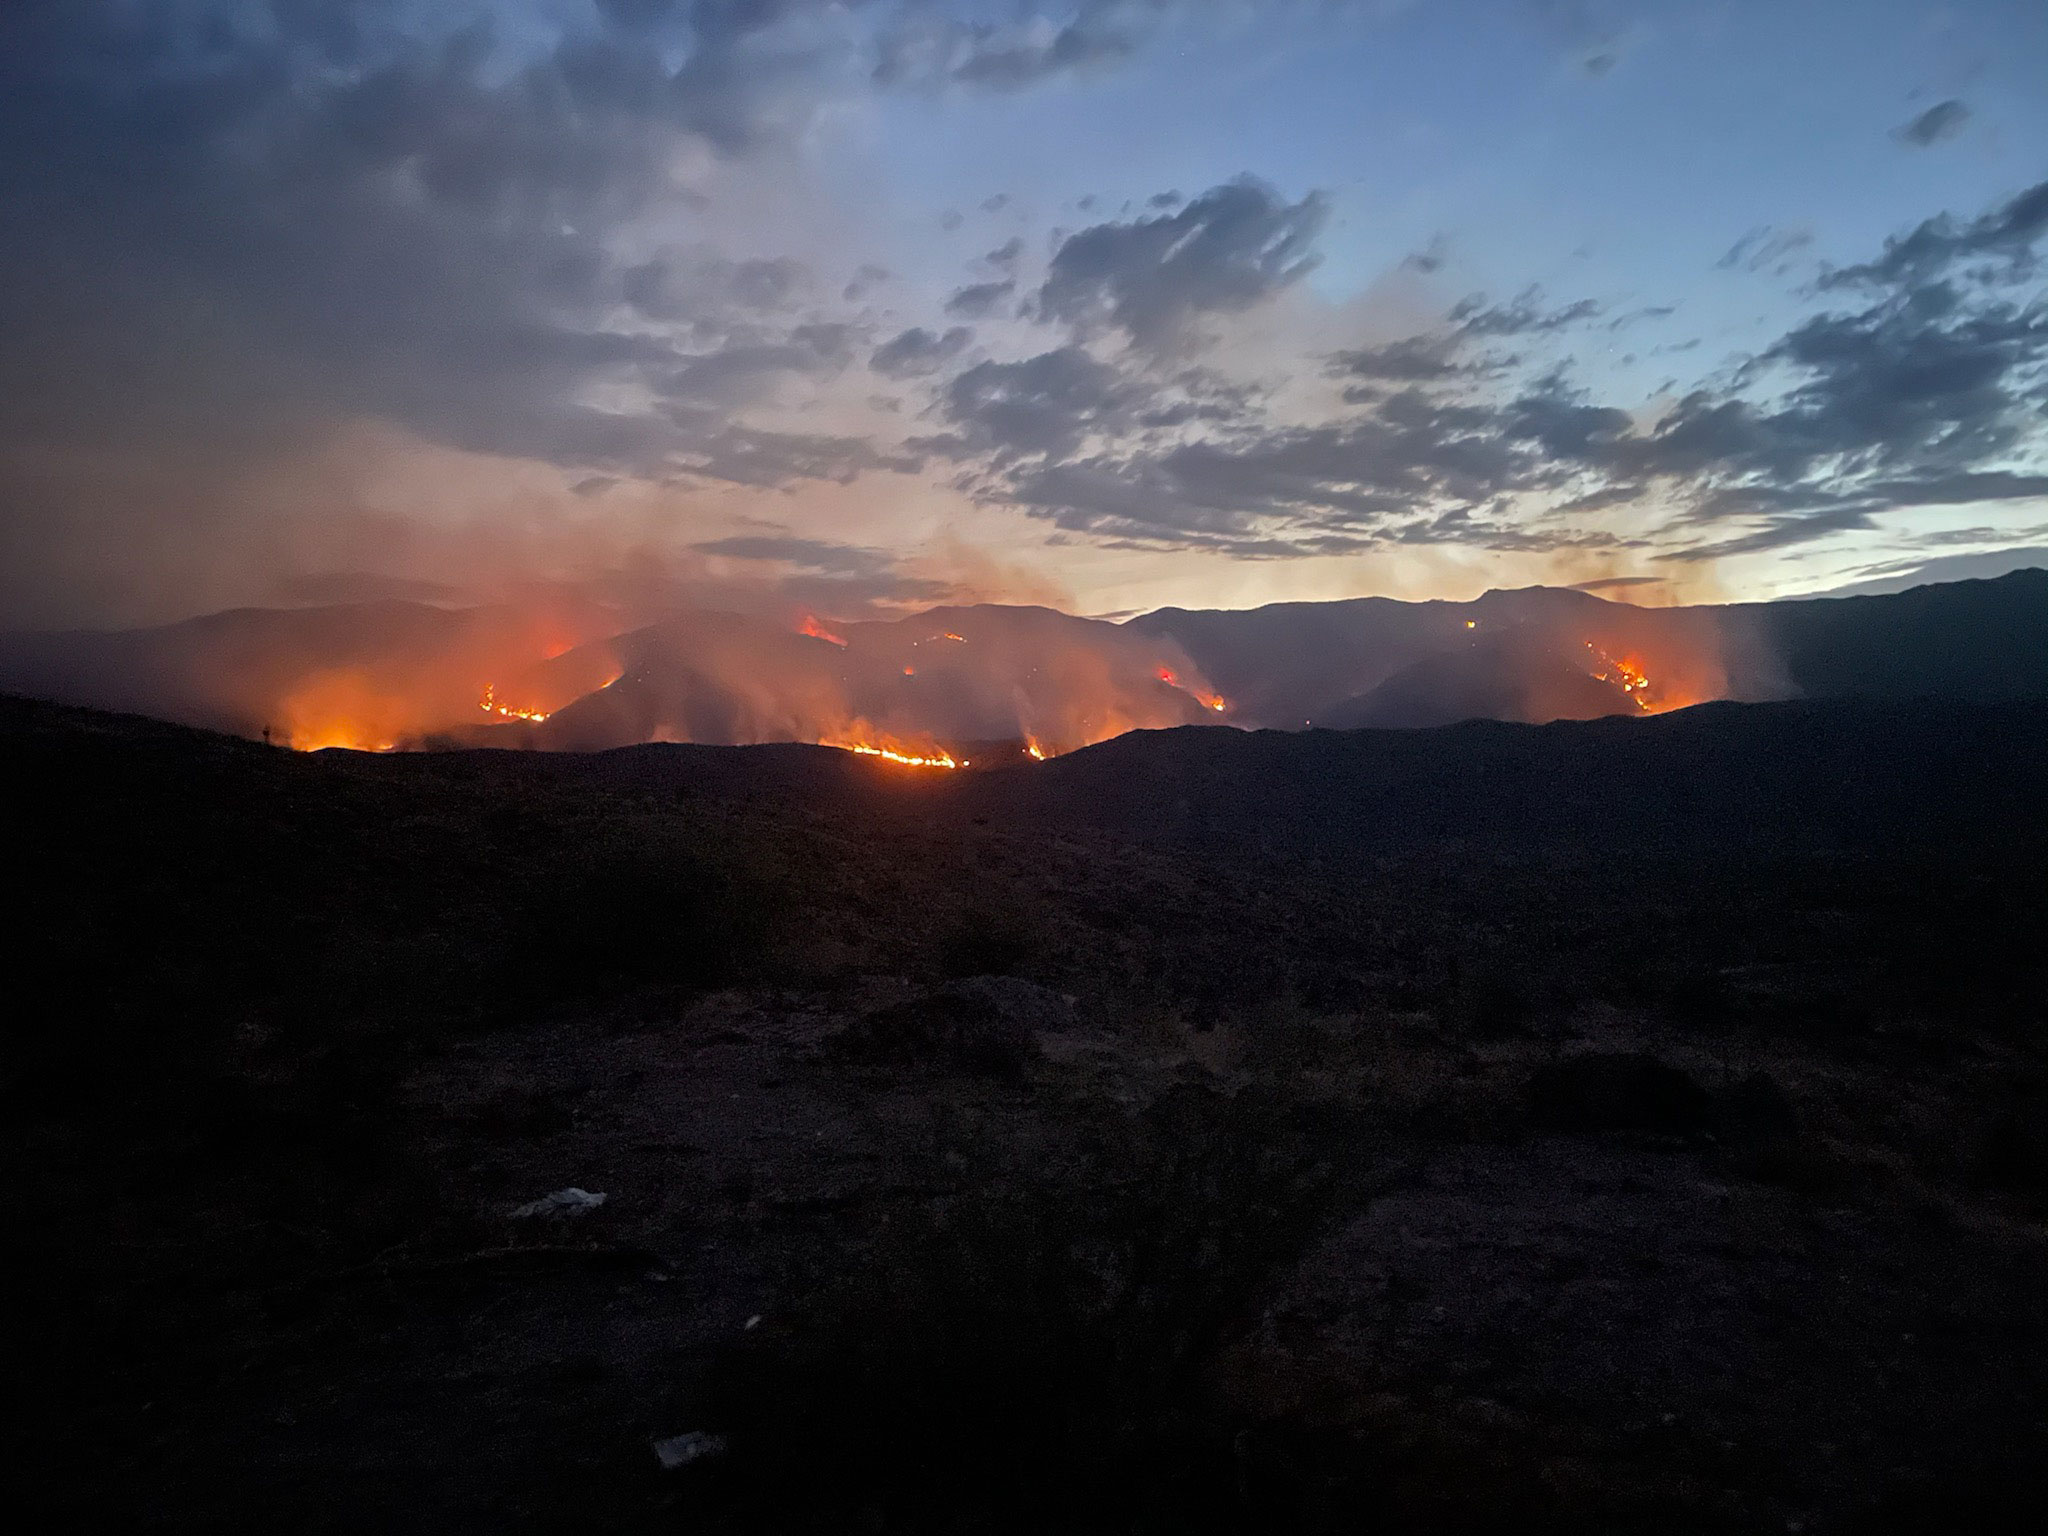 Evacuation orders issued in parts of Arizona as Tiger Fire continues to burn